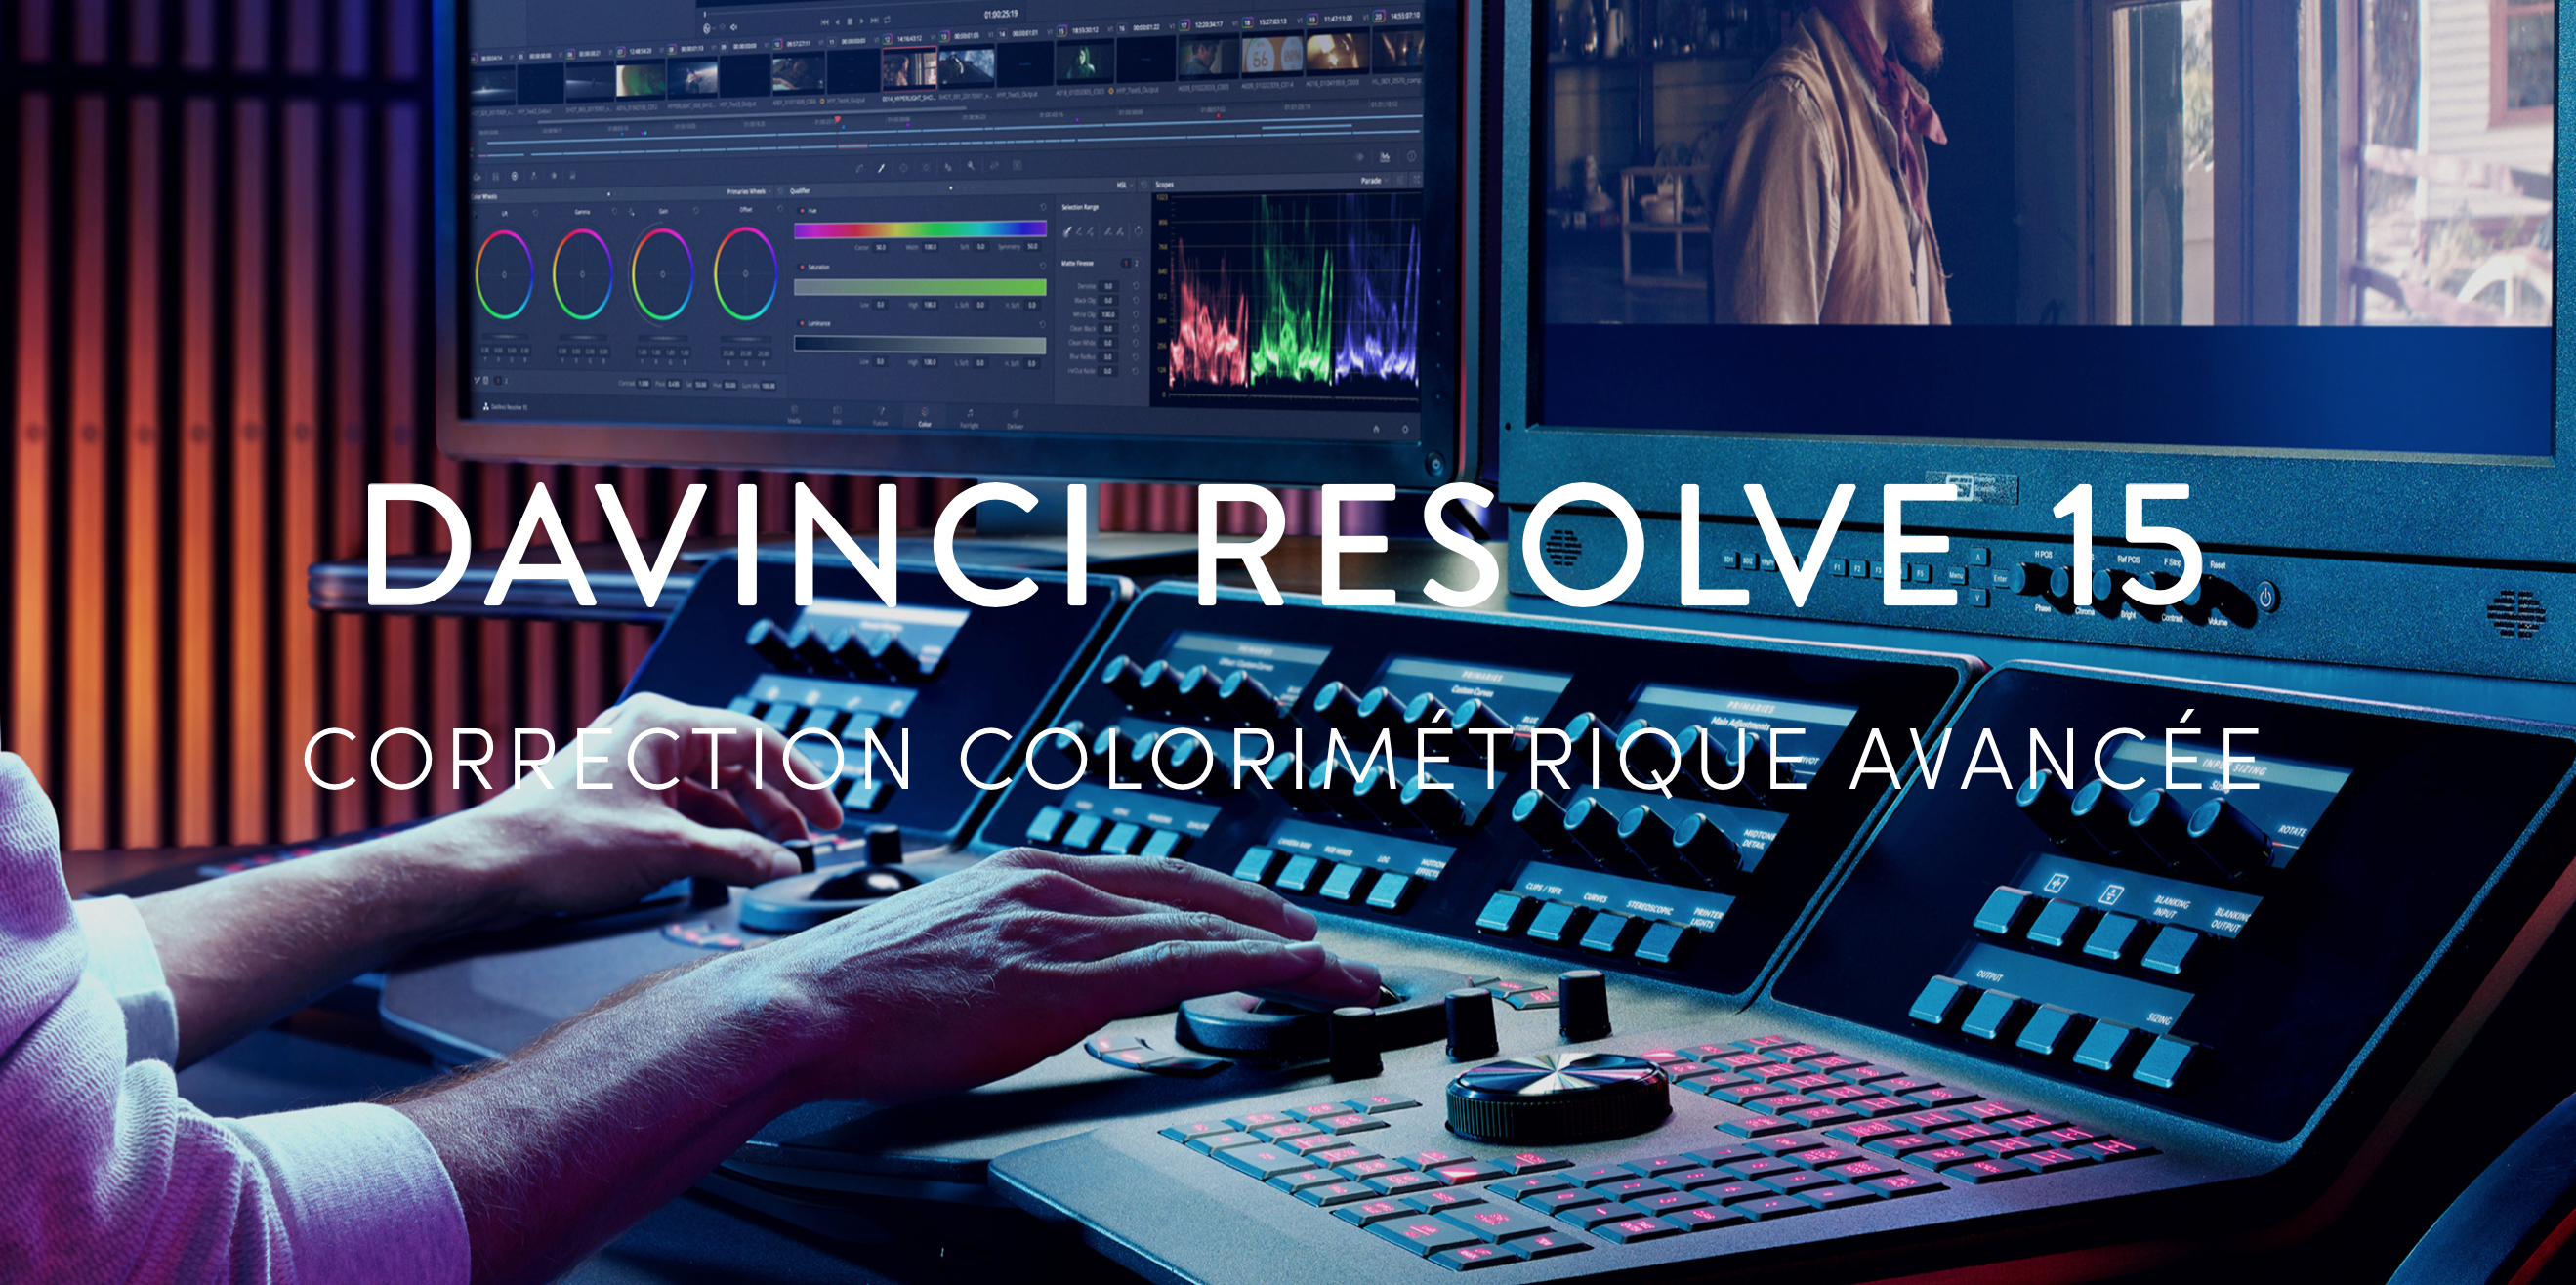 DAVINCI RESOLVE - ETALONNAGE